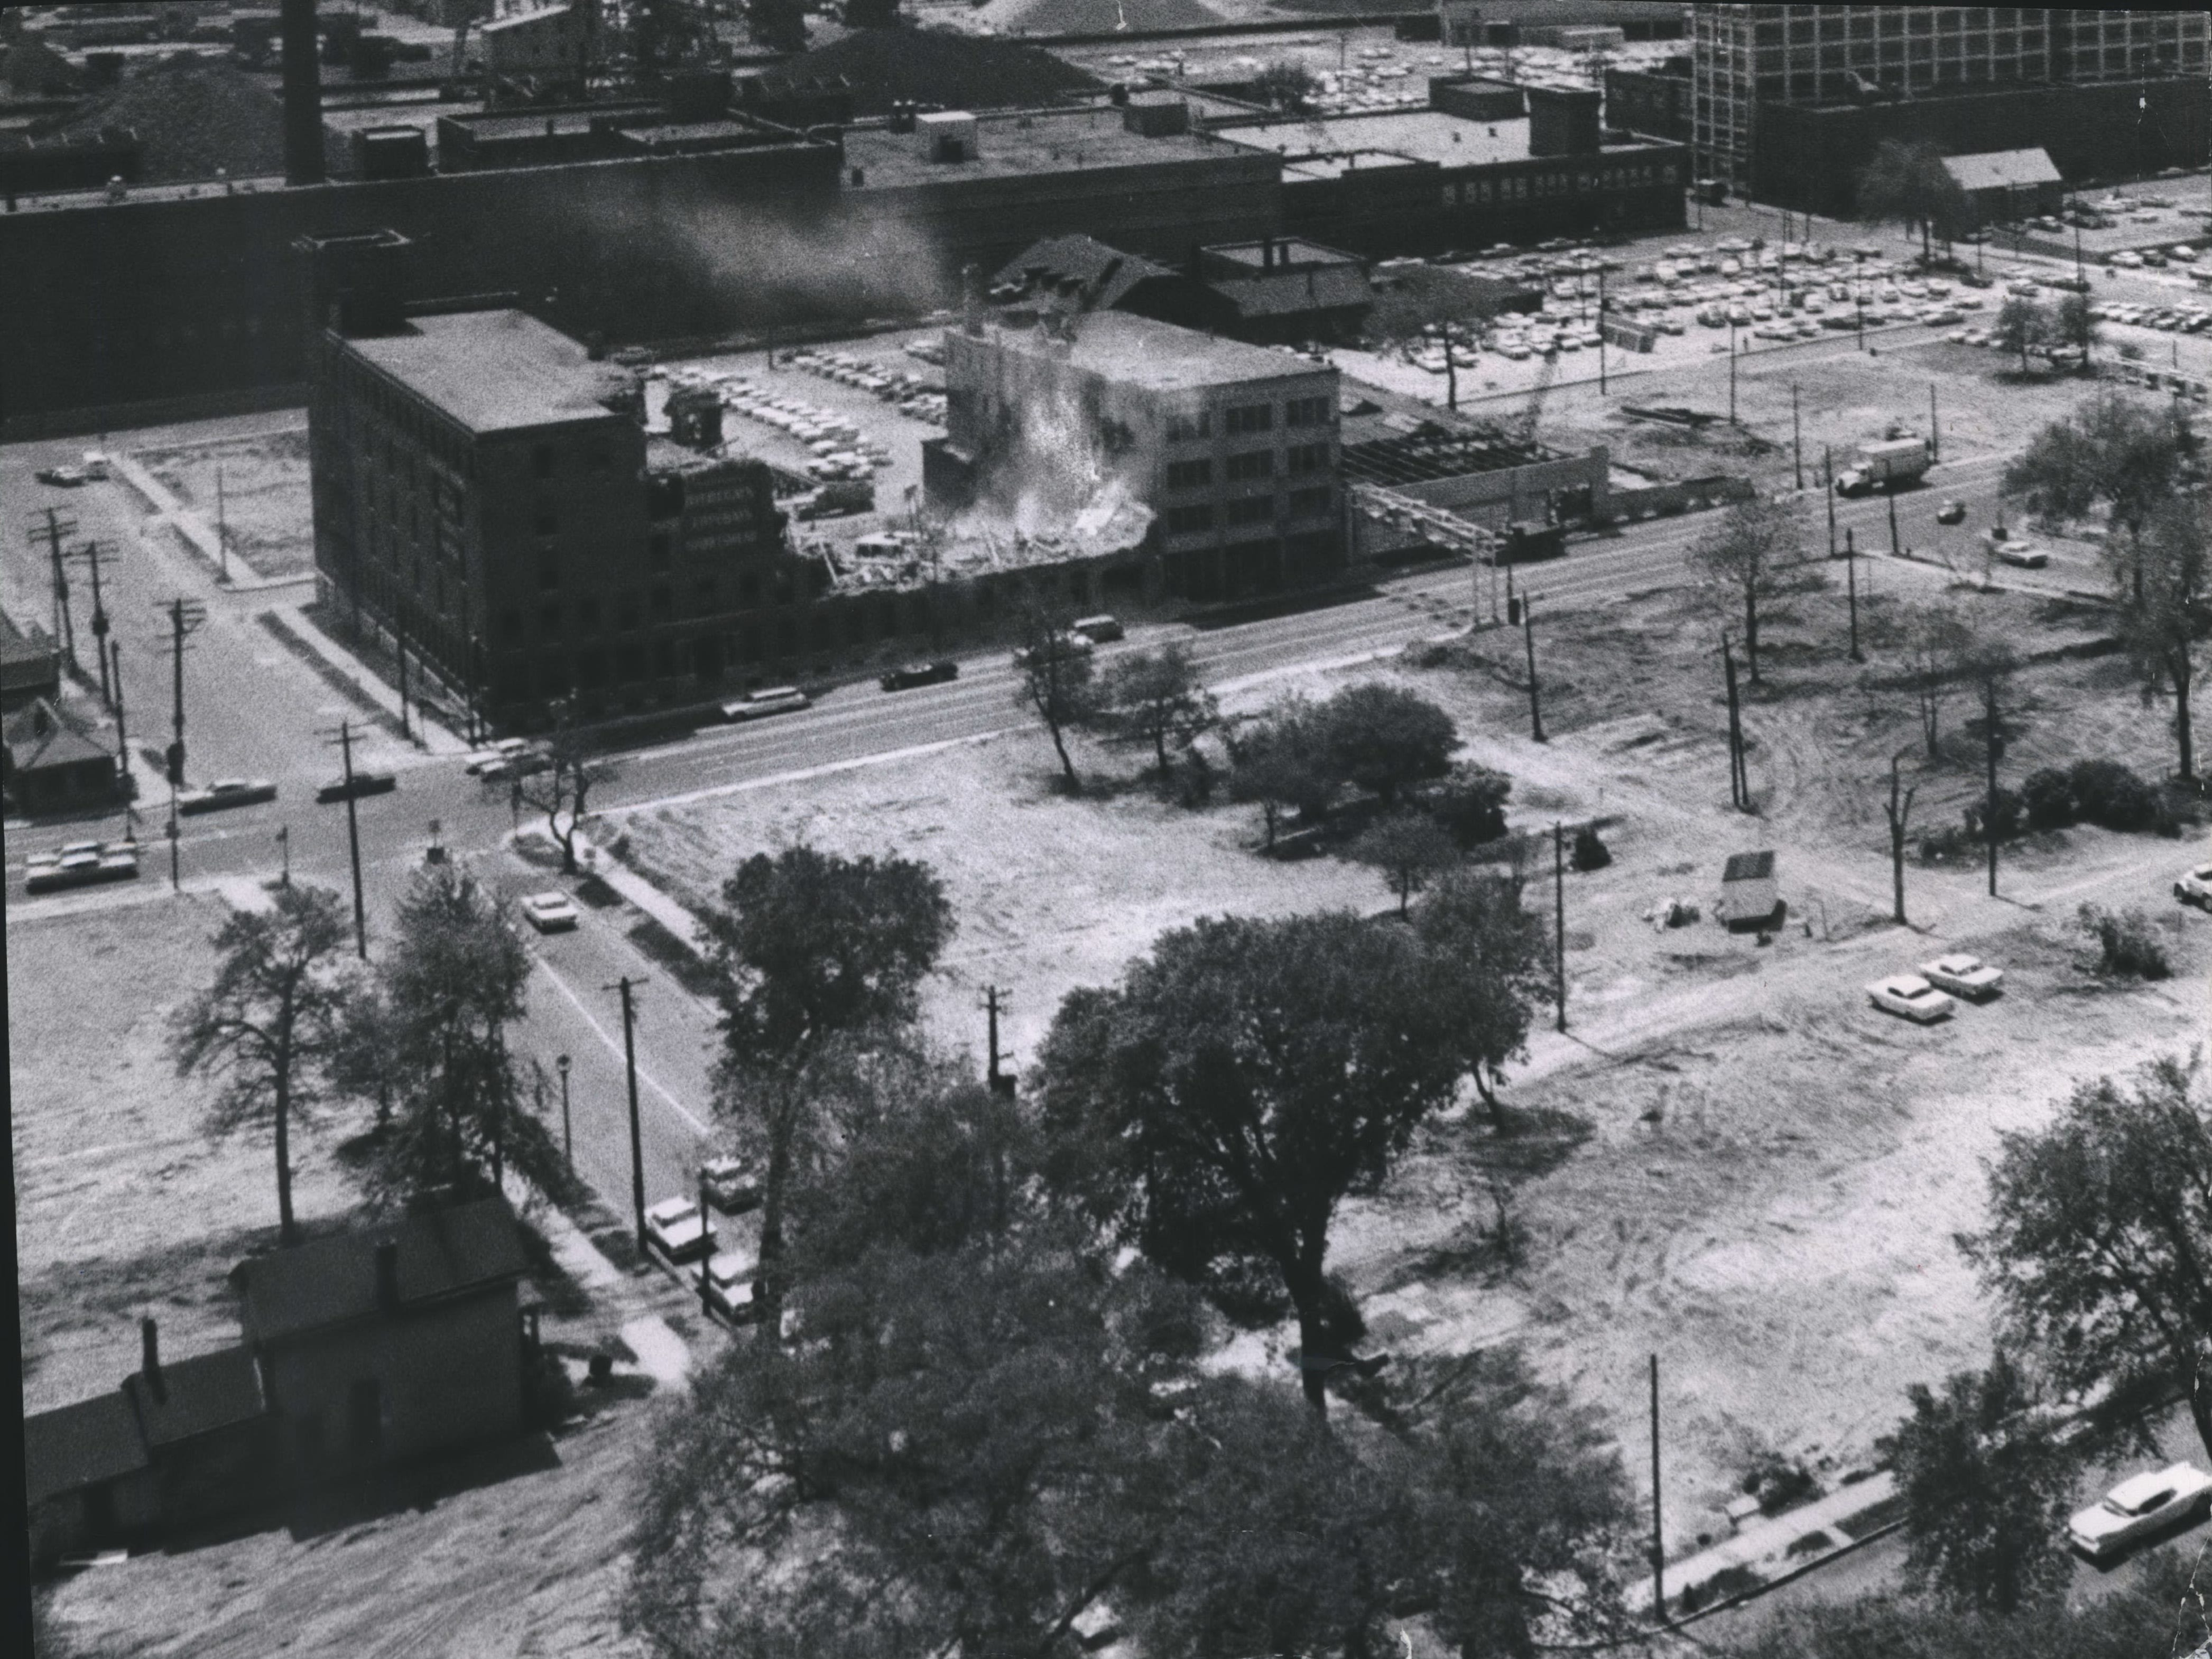 Wreckers demolish the former Cohen Brothers Clothing Co. building at W. Clybourn and N. 10th streets on May 21, 1964. The building, like the surrounding empty lots, was being cleared to make way for construction of the Central Interchange. The Cutler-Hammer plant, also a target of the project, is to the right of the Cohen Brothers building. This photo was published in the May 22, 1964, Milwaukee Journal.